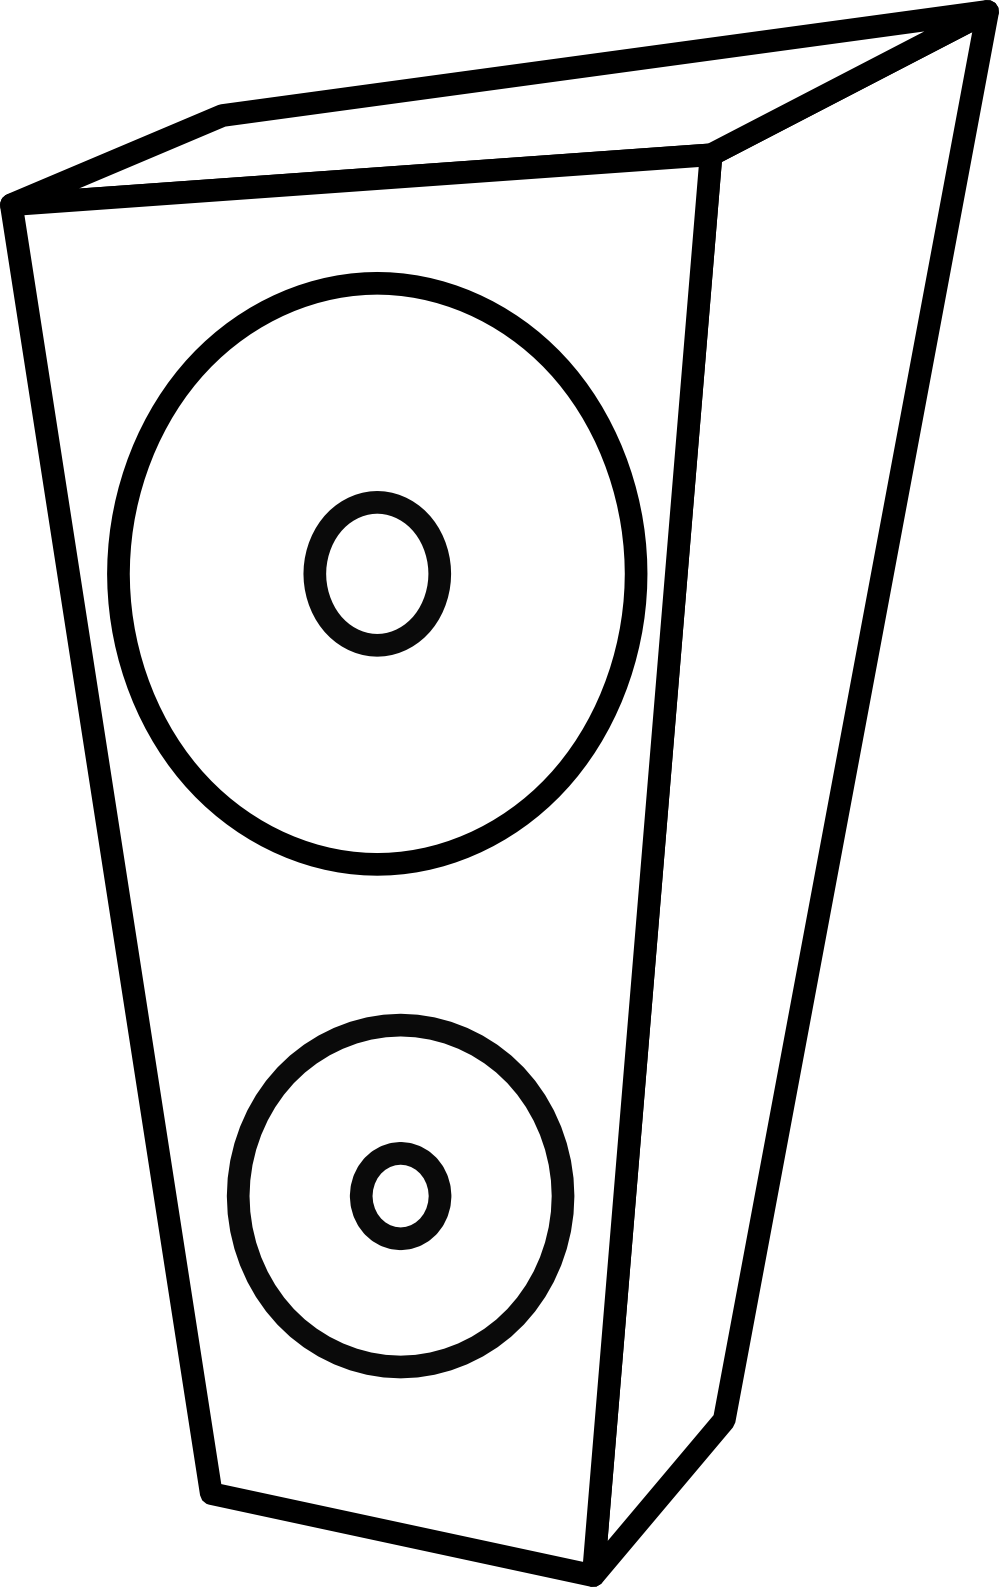 Speakers clipart loud sound Clipart Info Black Images Speakers